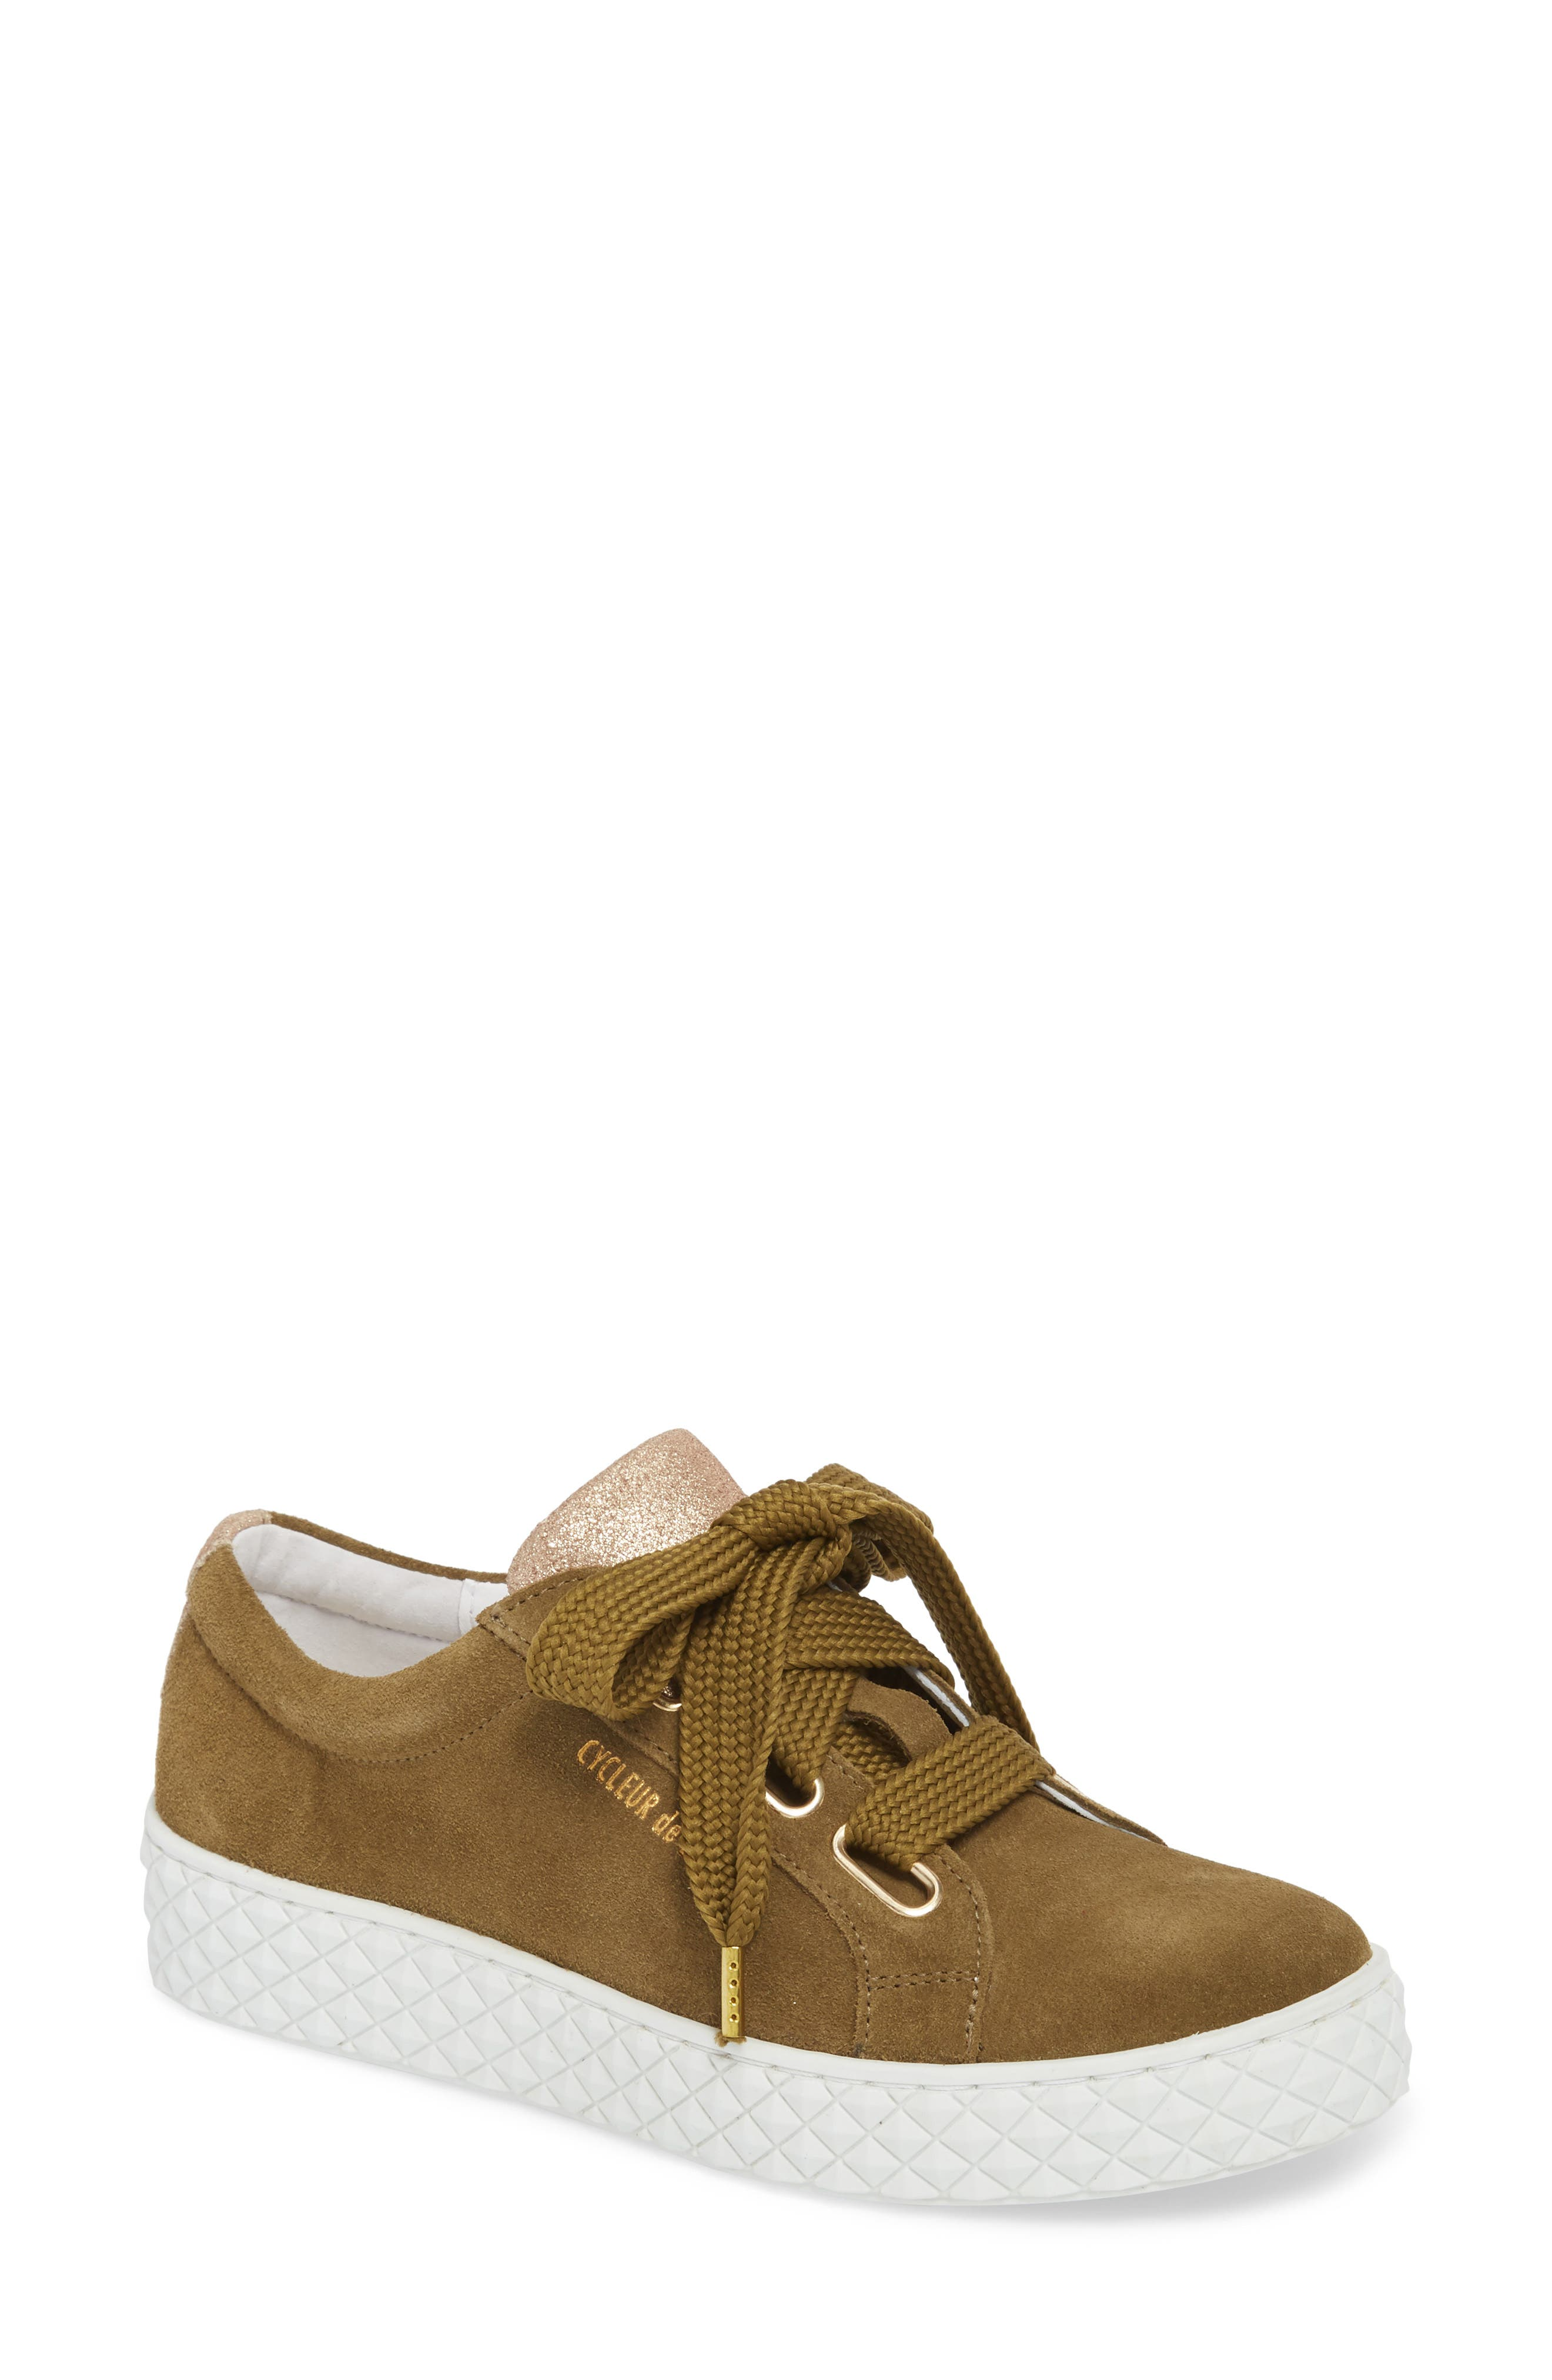 Acton III Sneaker,                             Main thumbnail 1, color,                             Military Green/ Gold Suede